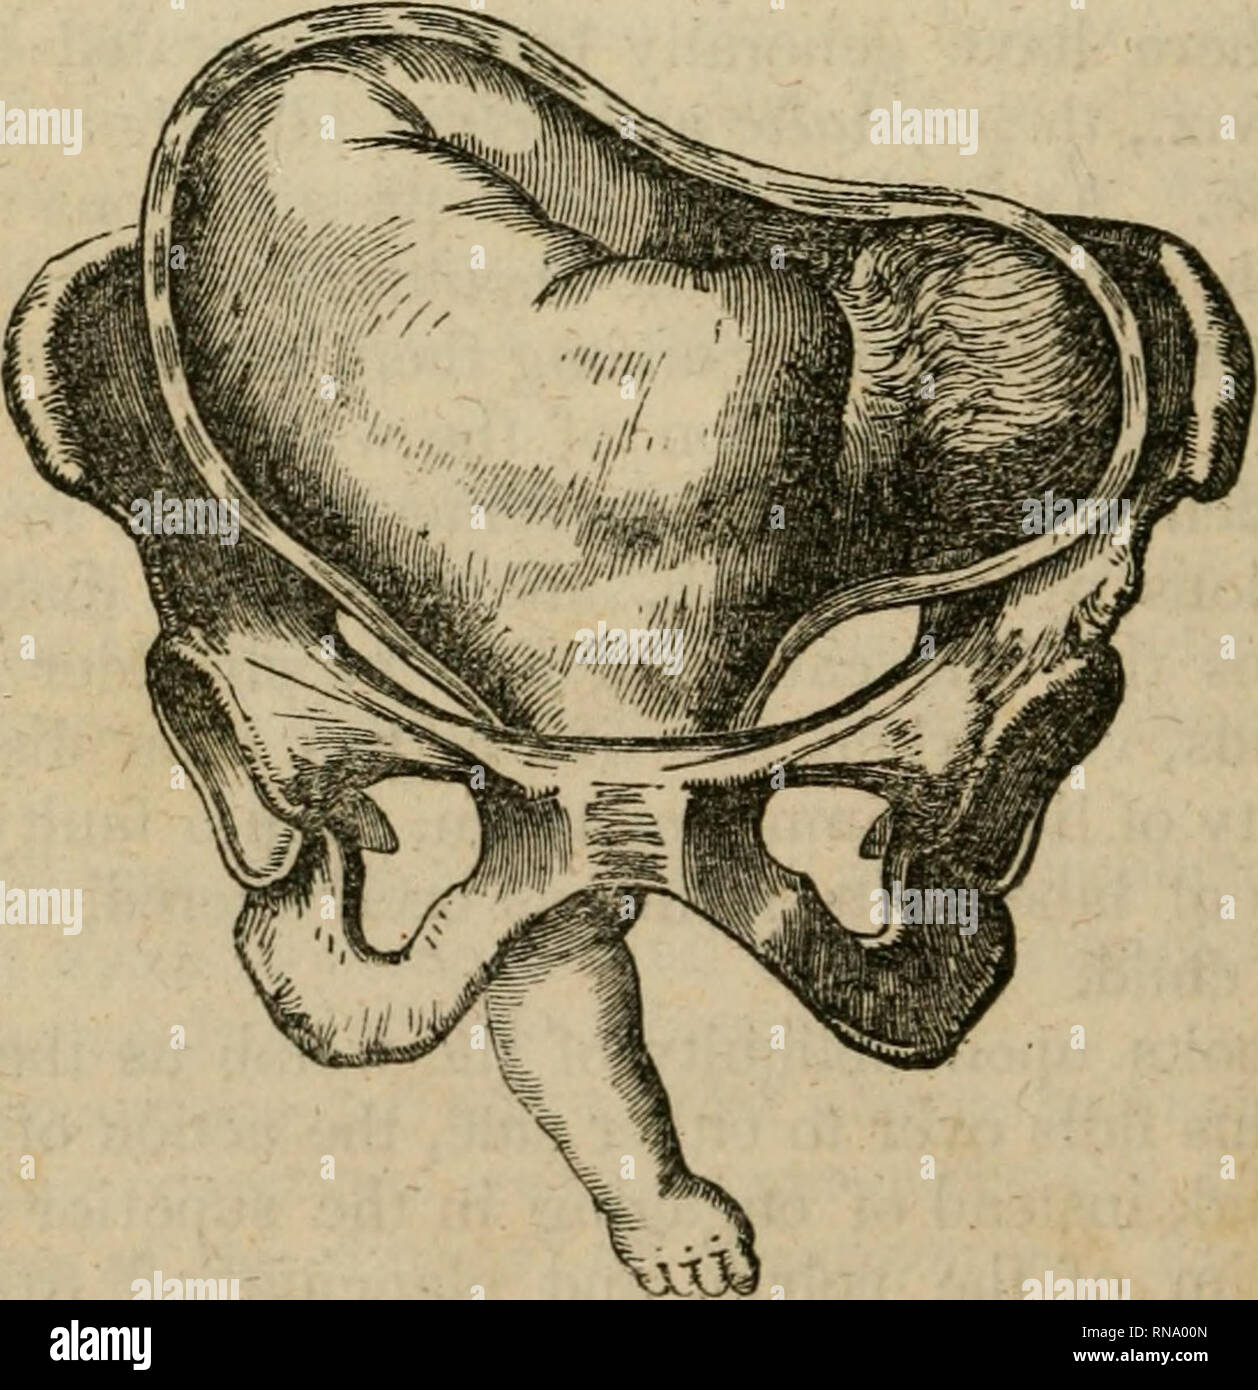 . An analytical compendium of the various branches of medical science, for the use and examination of students. Anatomy; Physiology; Surgery; Obstetrics; Medicine; Materia Medica. 86 OBSTETRICS. turned upwards into the costa of the ilium, while the shoulder de- scends or engages in the superior strait. Diagnosis.—It is only when the labour has commenced, and indeed made some progress, that a shoulder presentation can be positively detected. It may be suspected, if we are unable to reach the presenting part, if the os uteri, though flaccid, opens slowly, if the bag of waters is cylindrical, or  - Stock Image